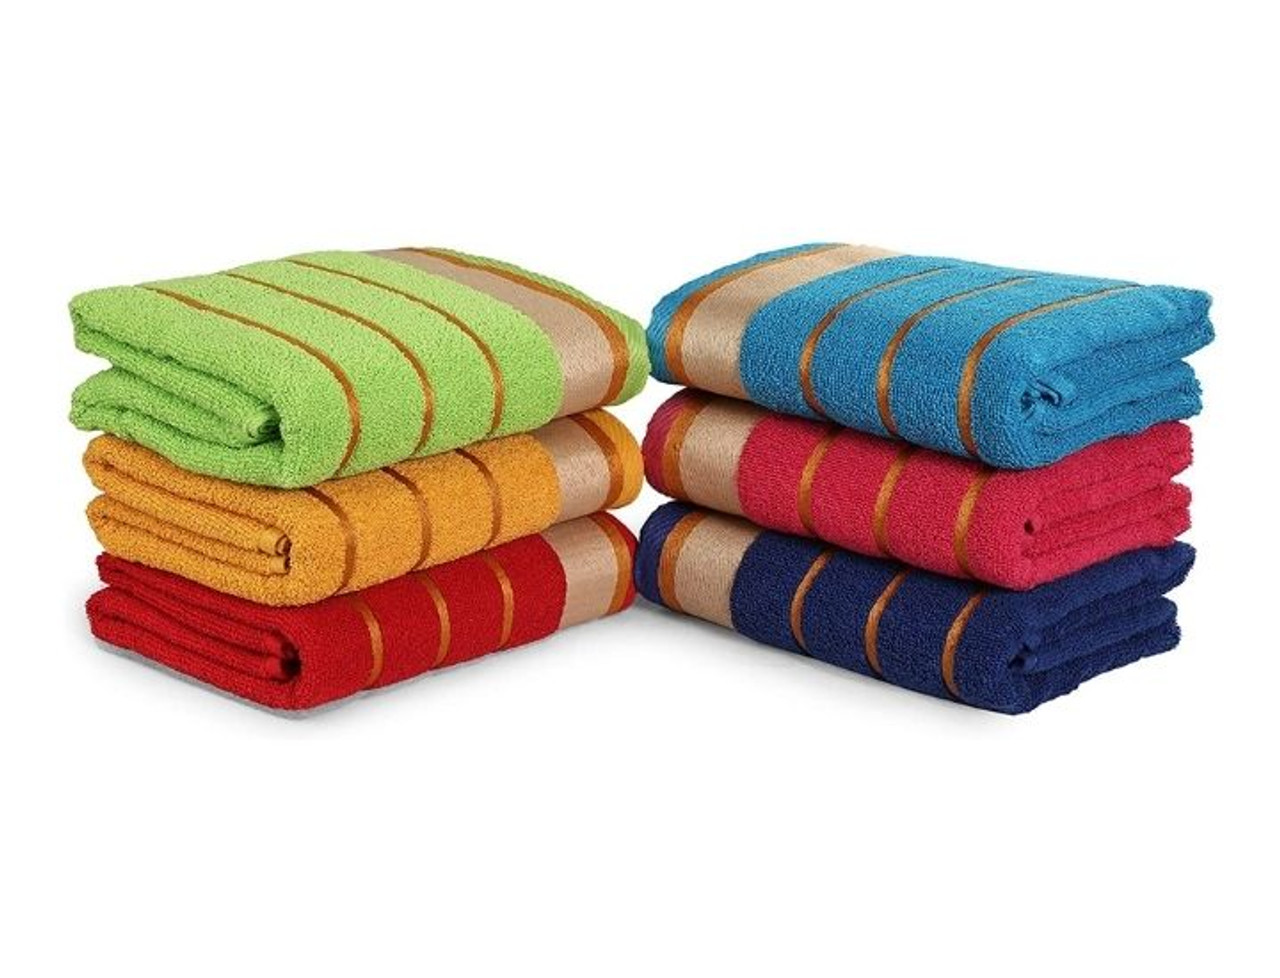 6-Pack Three-Line 100% Cotton Bath Towels